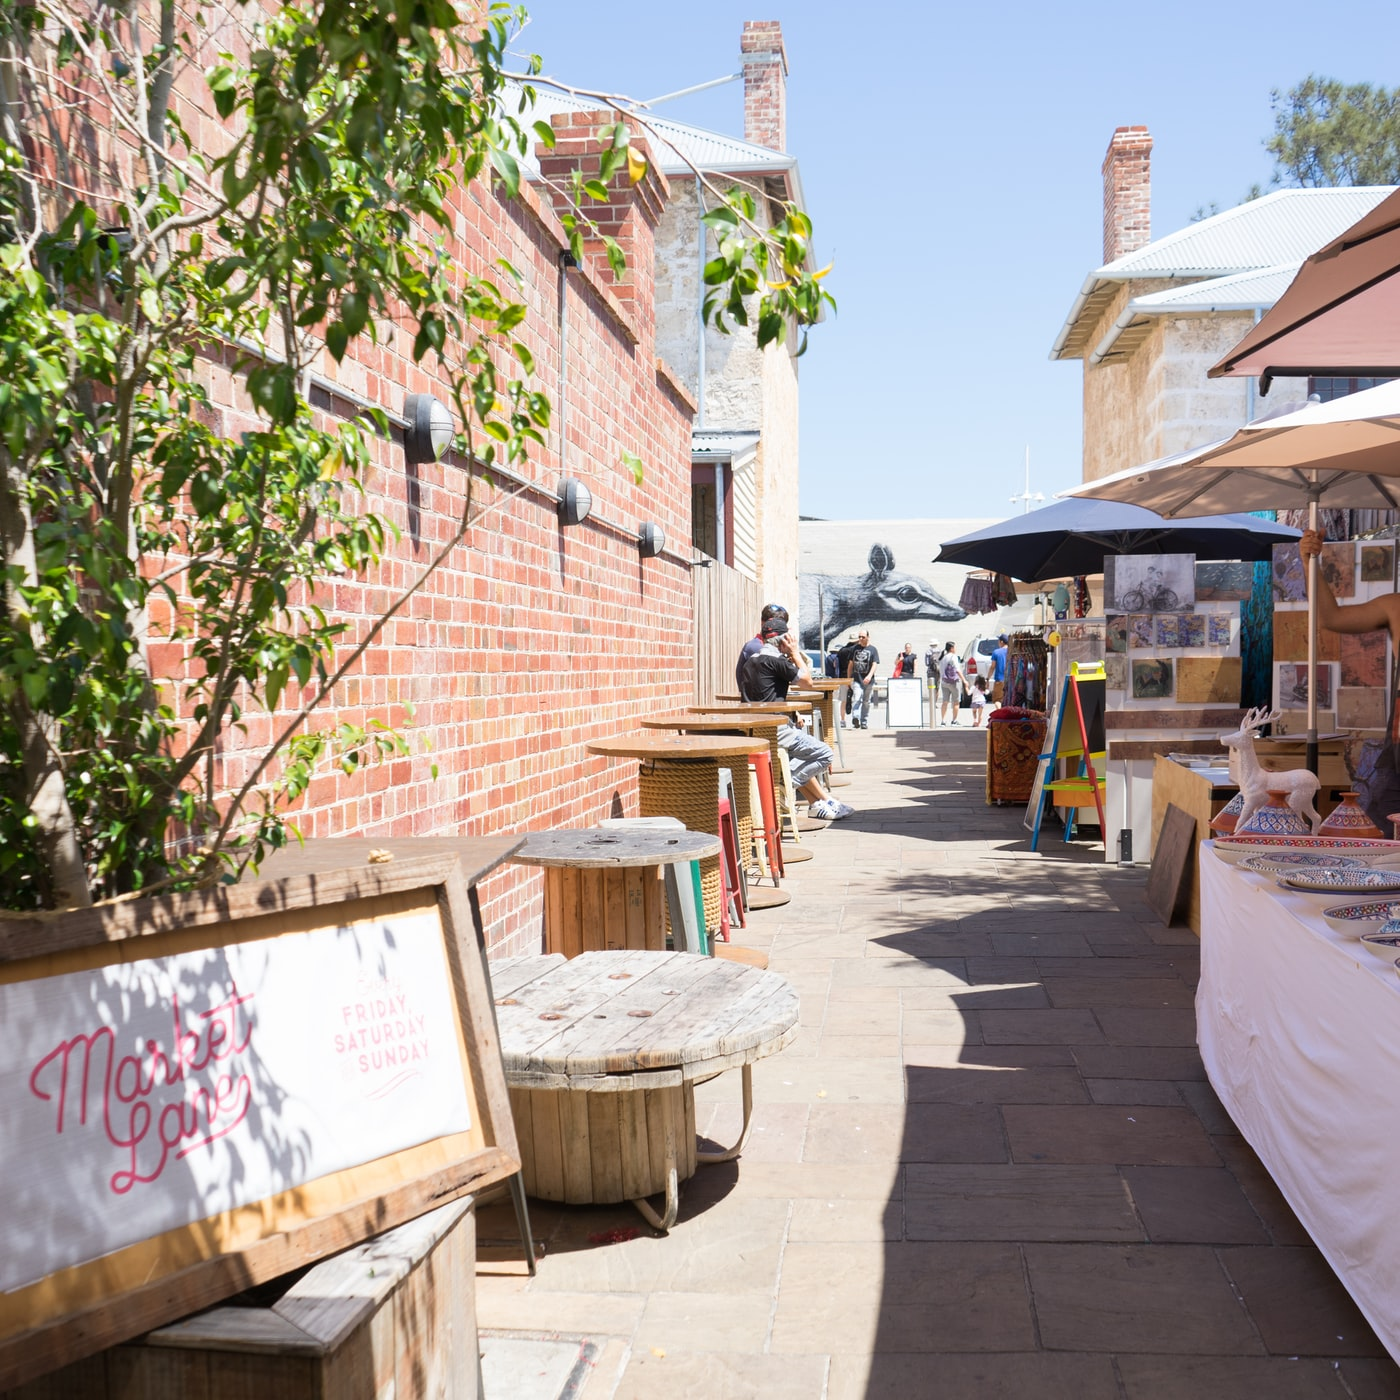 fremantle markets - Places To Go in Perth